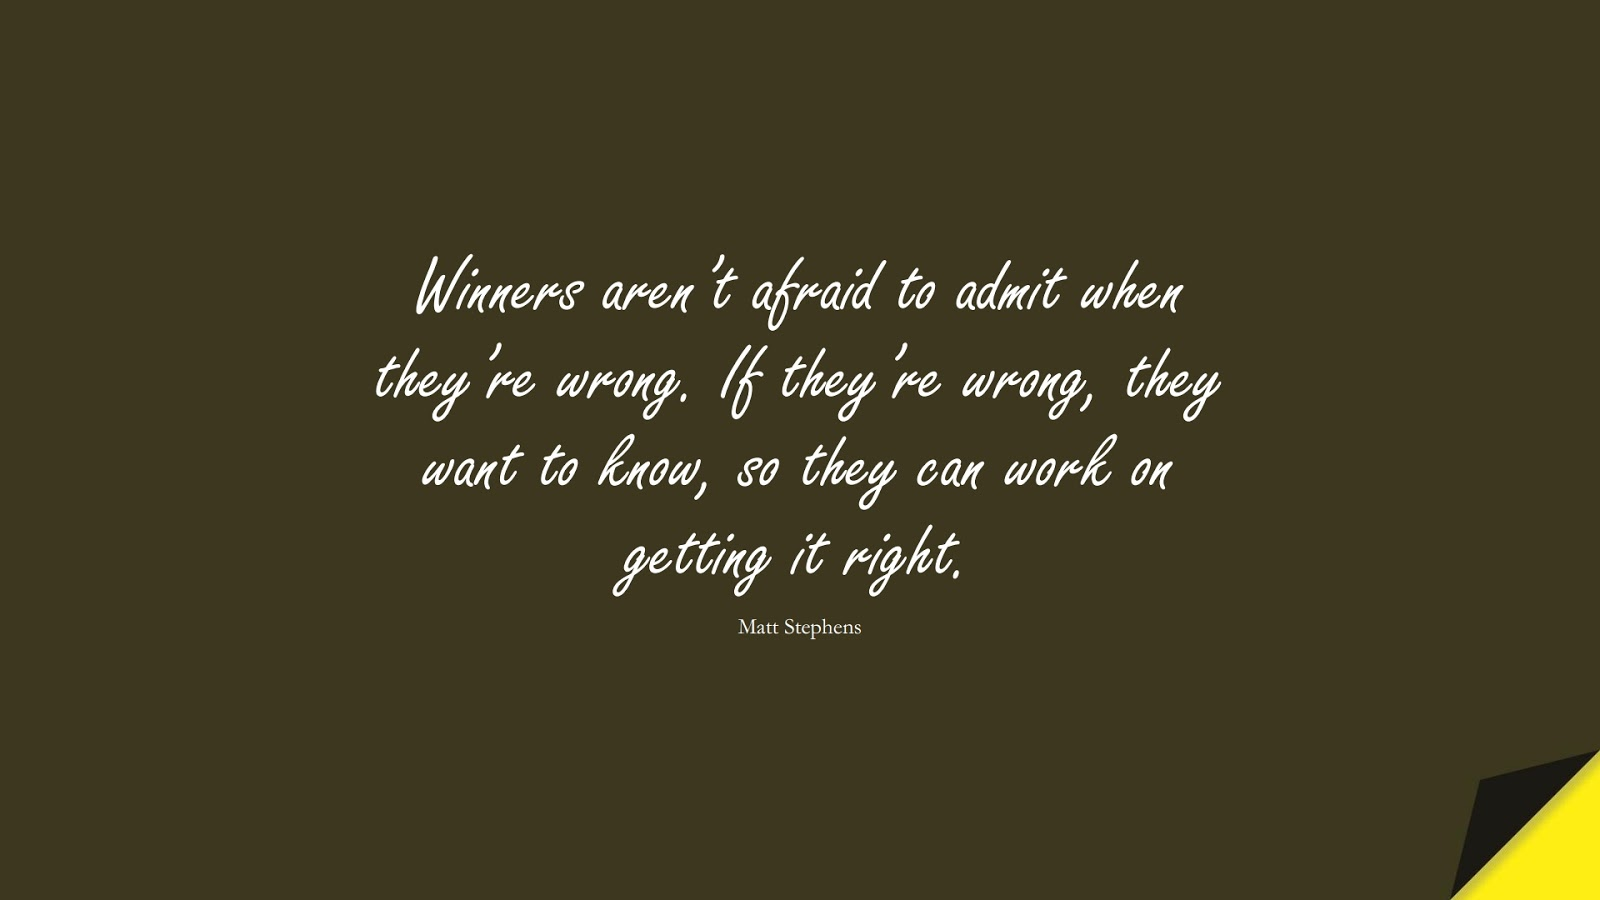 Winners aren't afraid to admit when they're wrong. If they're wrong, they want to know, so they can work on getting it right. (Matt Stephens);  #BeingStrongQuotes